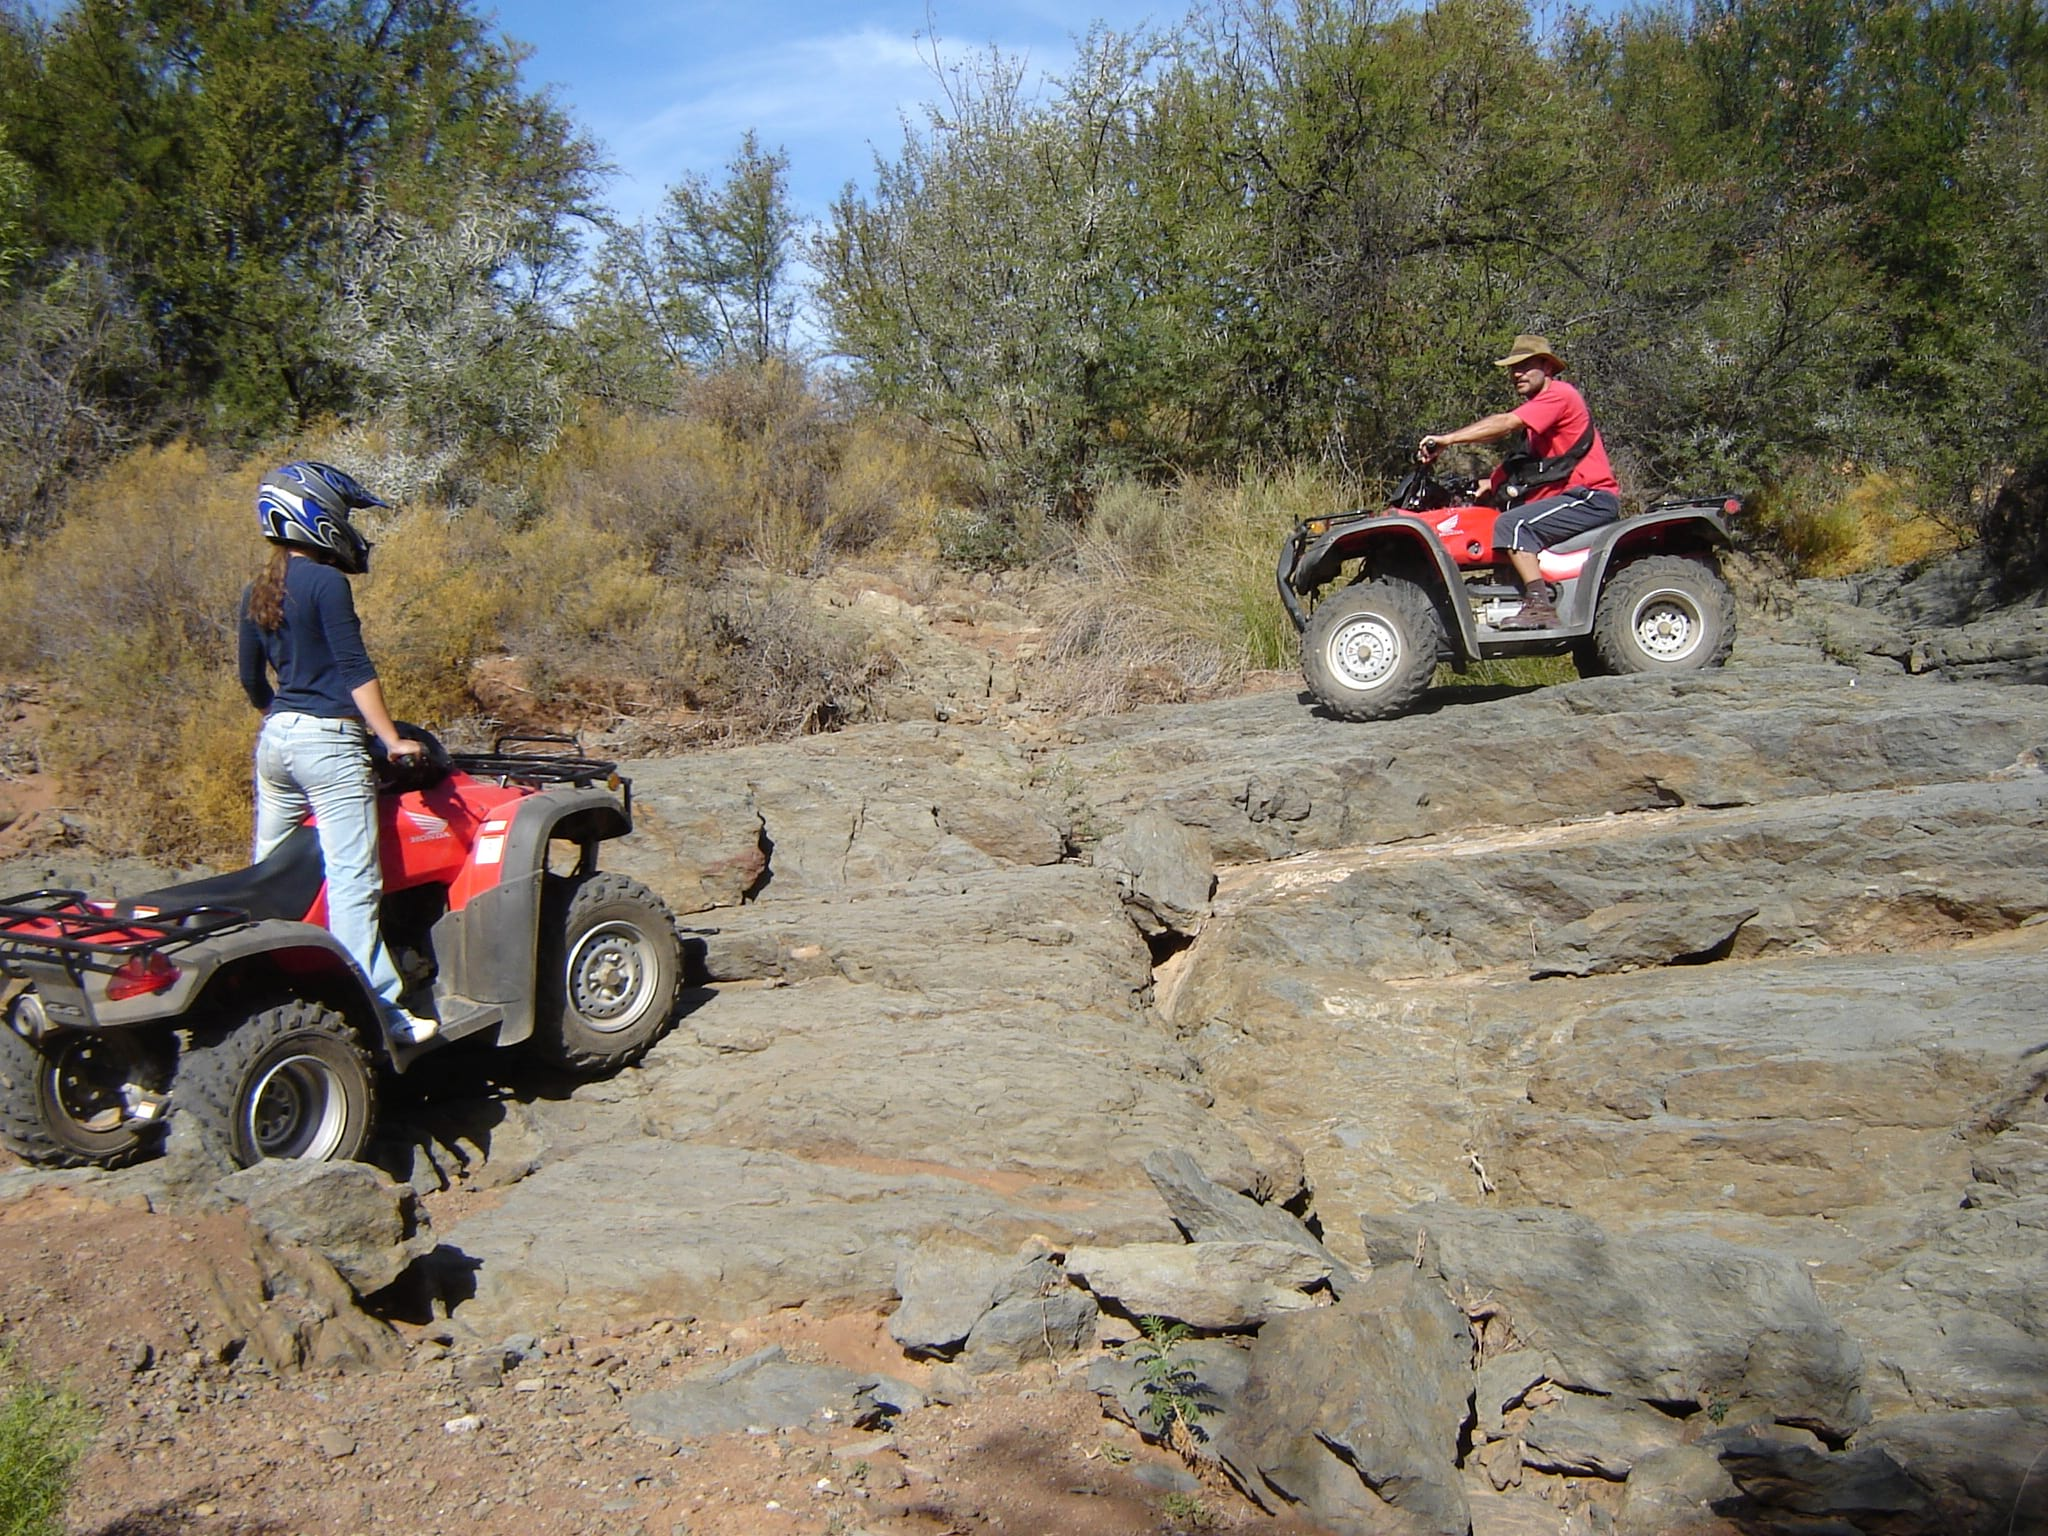 Teenager Beth and her dad on quad bikes